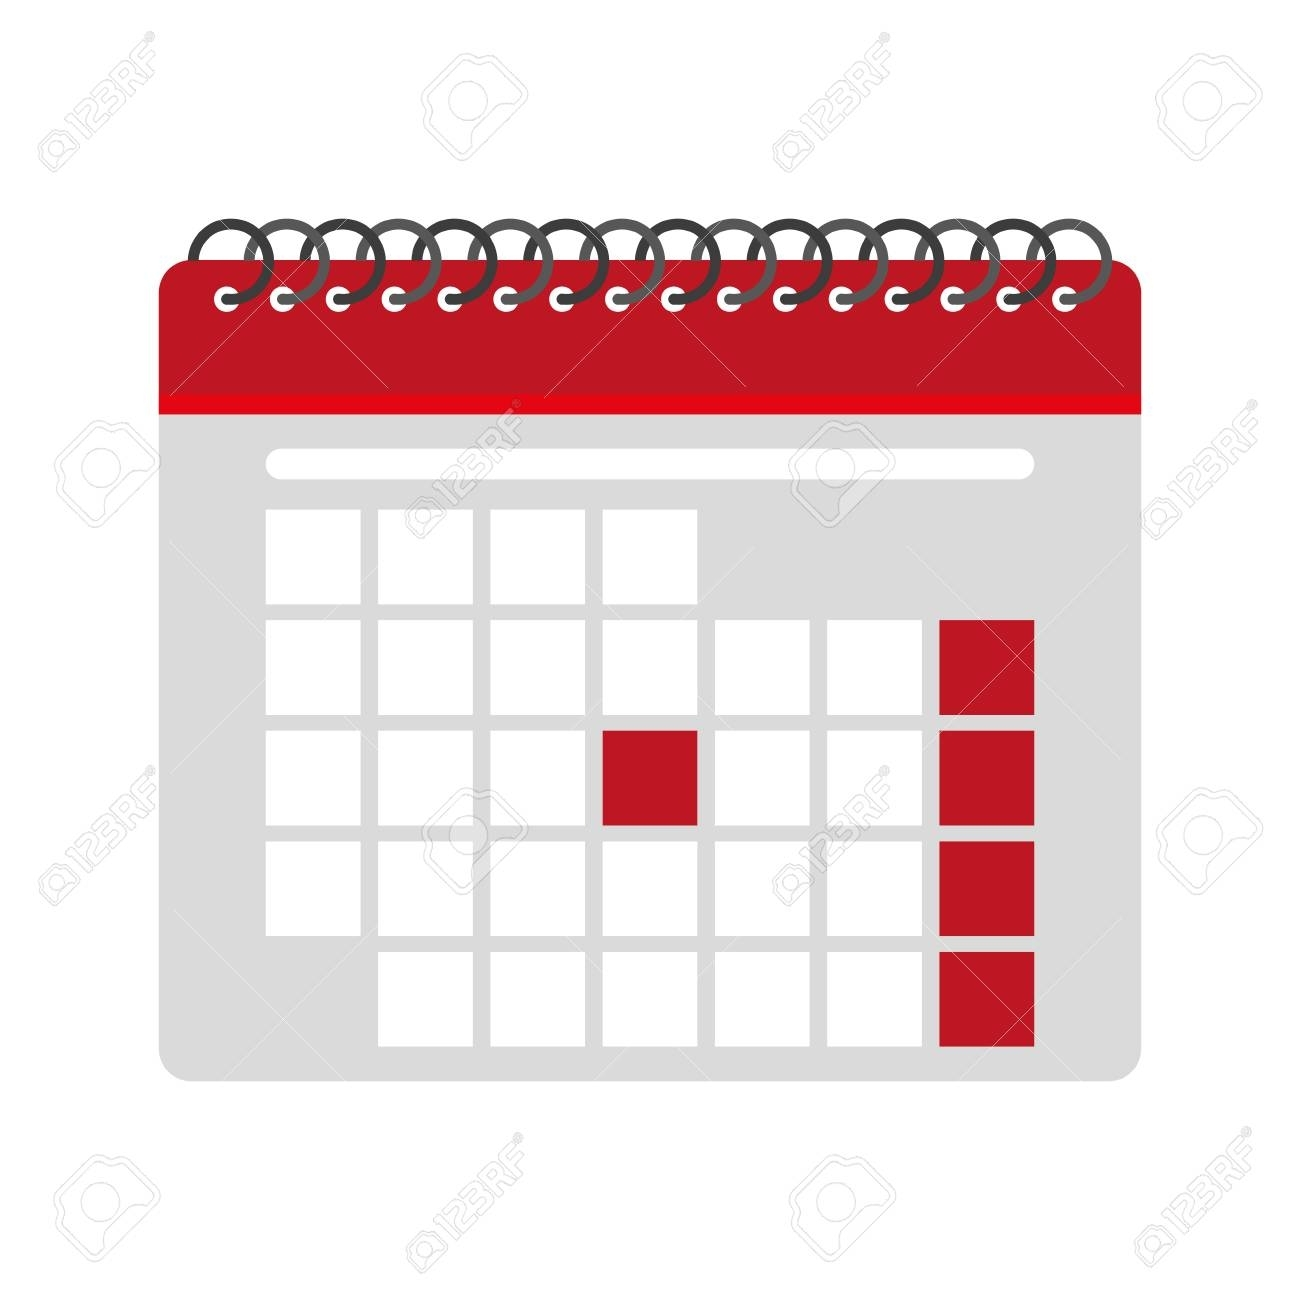 Blank Calendar Icon Image Vector Illustration Design Royalty Free intended for Free Images Generic Calendar Icon